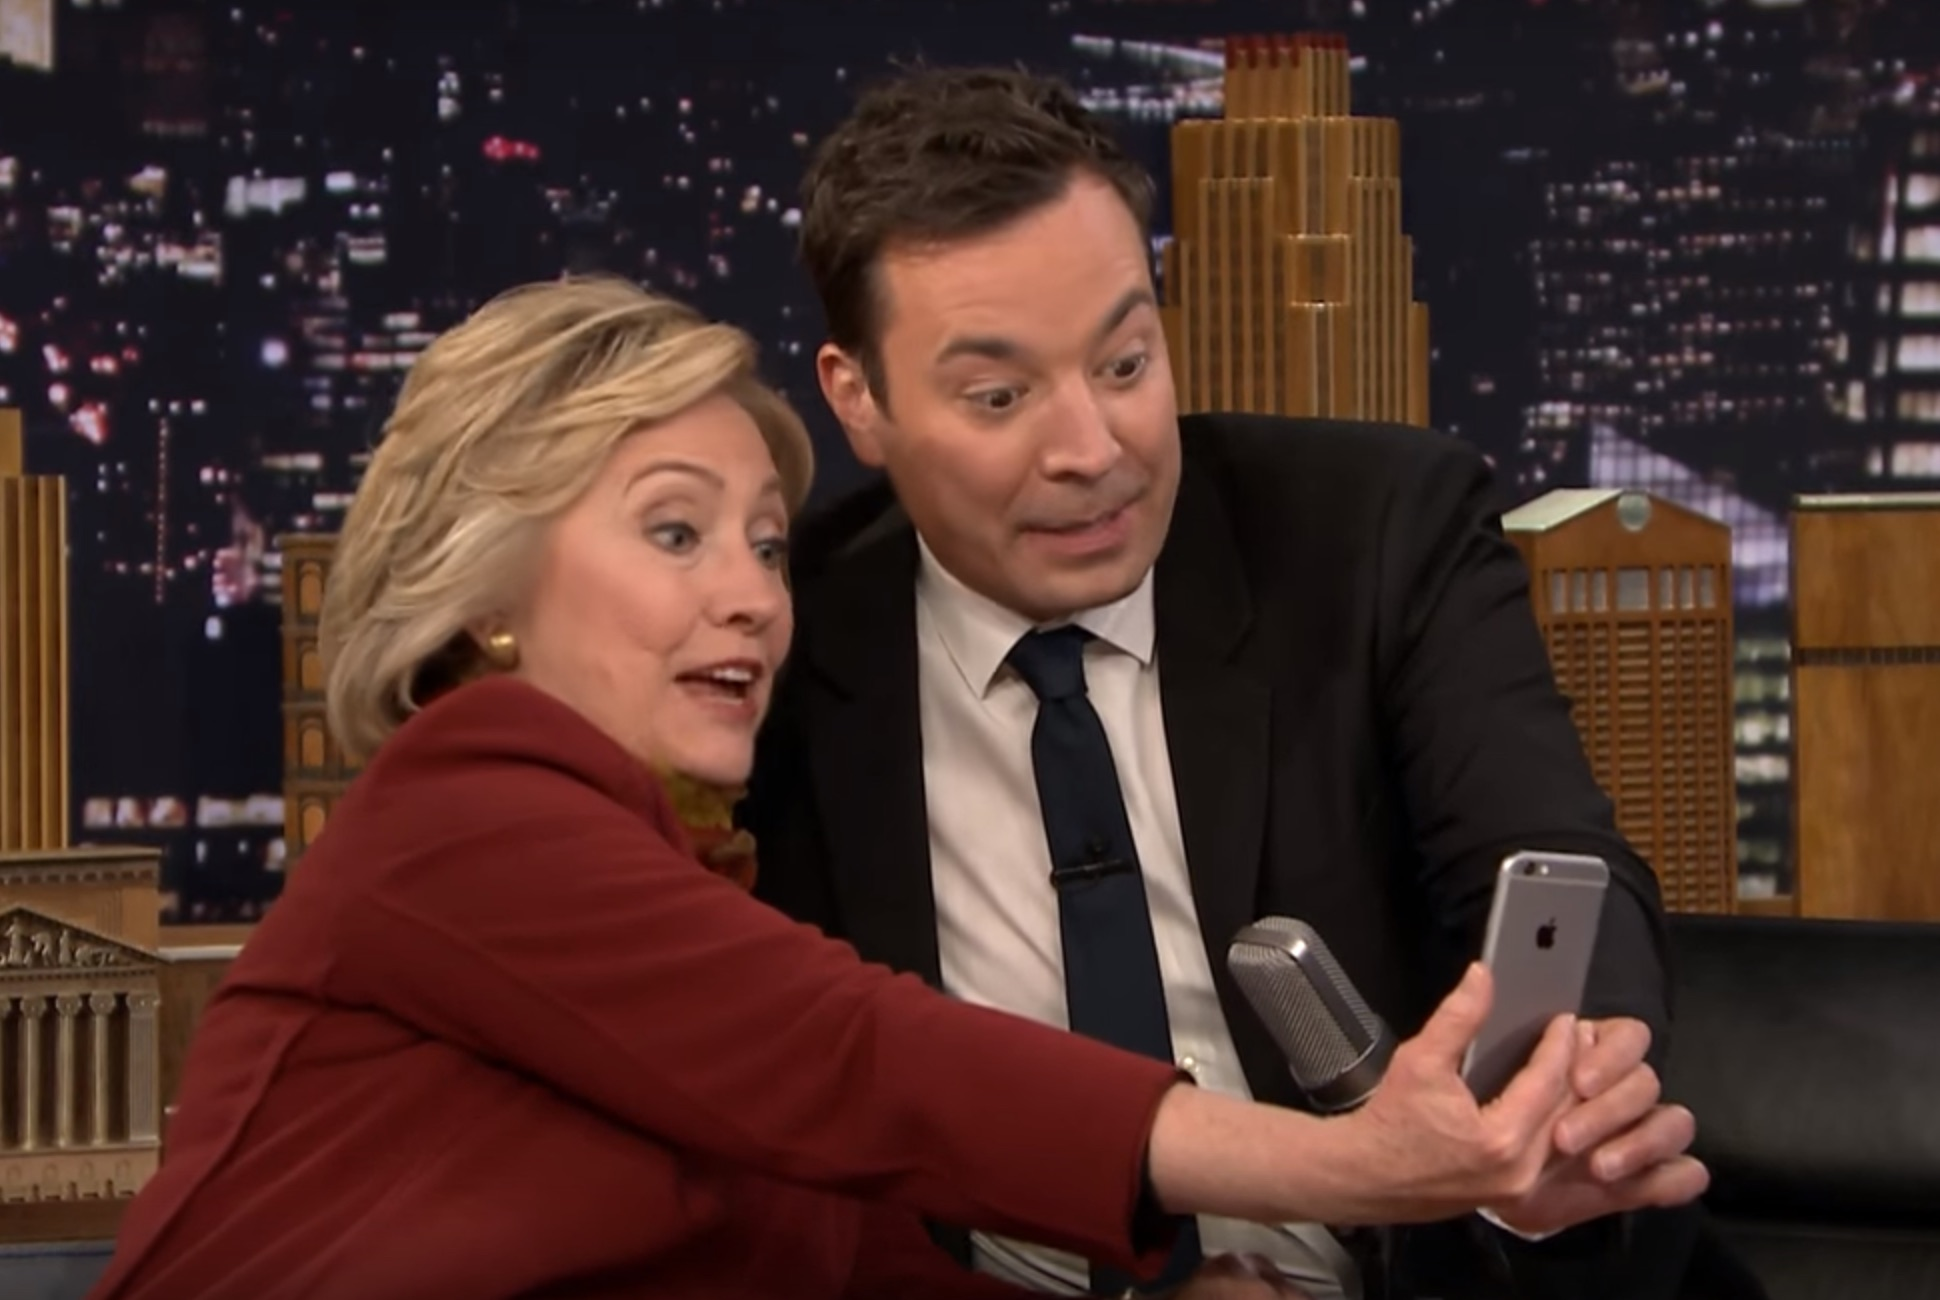 Hillary Clinton let Jimmy Fallon take over her Snapchat